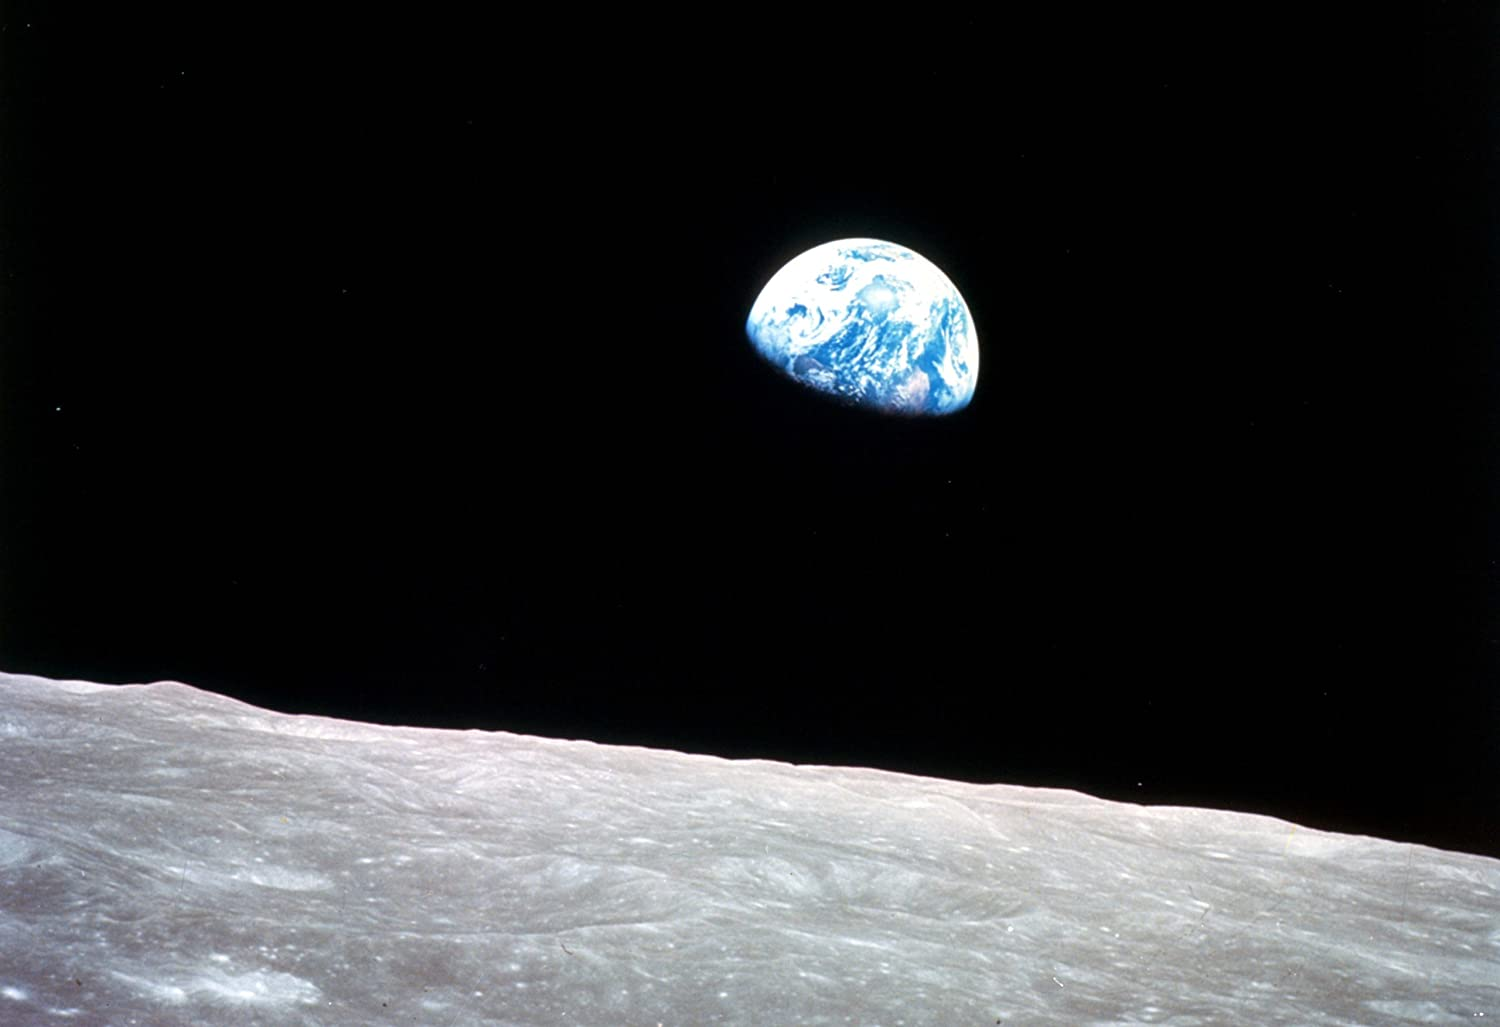 Earthrise by Apollo 8